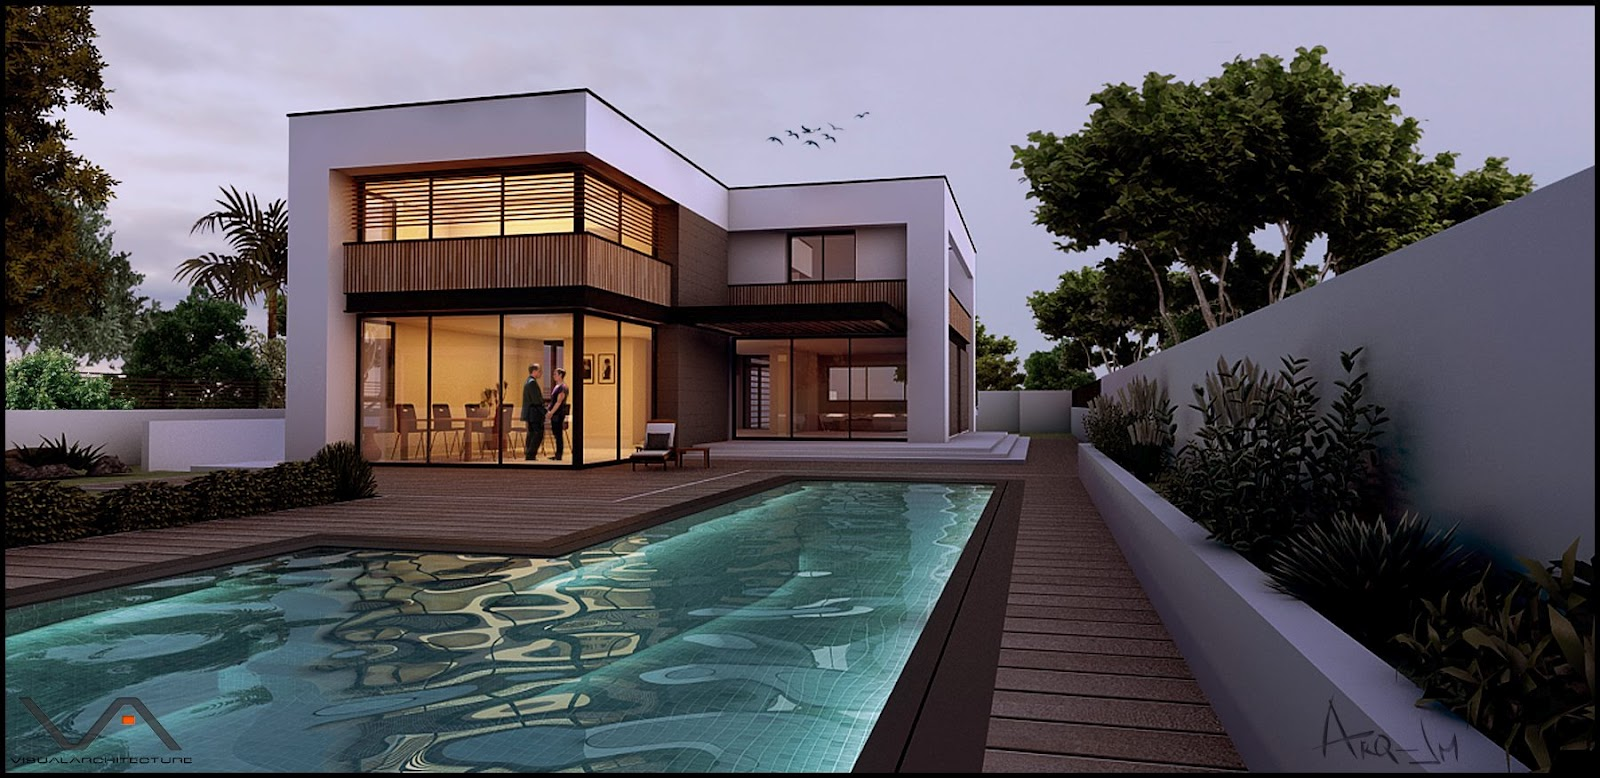 Nomeradona sketchup vr ssmds 6 ms house by juan manuel ariza Exterior house rendering software free